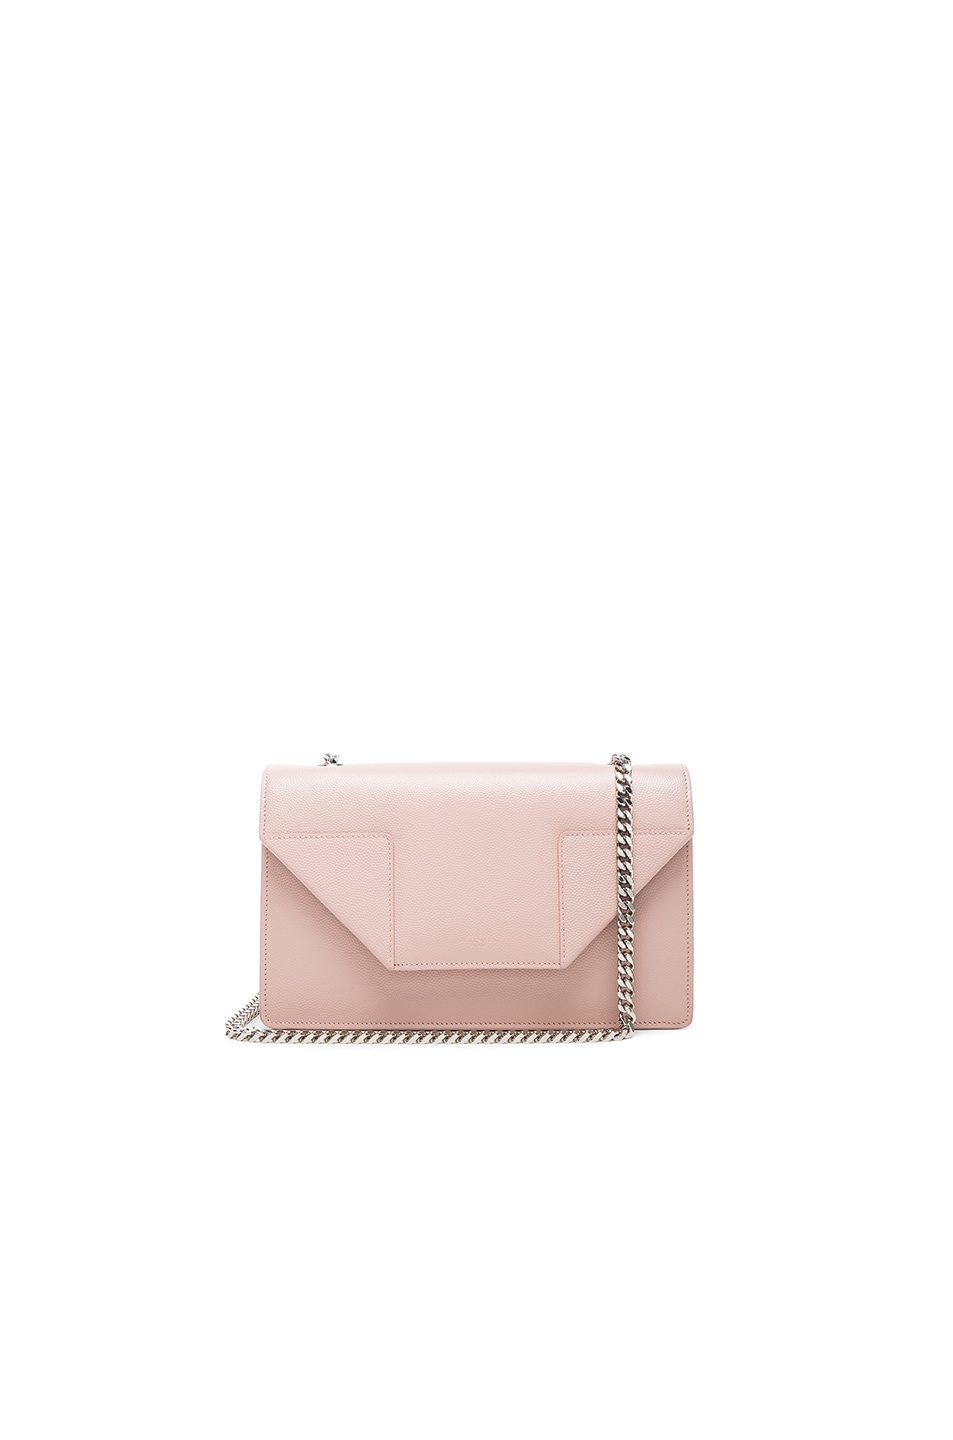 Image 1 of Saint Laurent Small Betty Chain Bag in Pale Blush